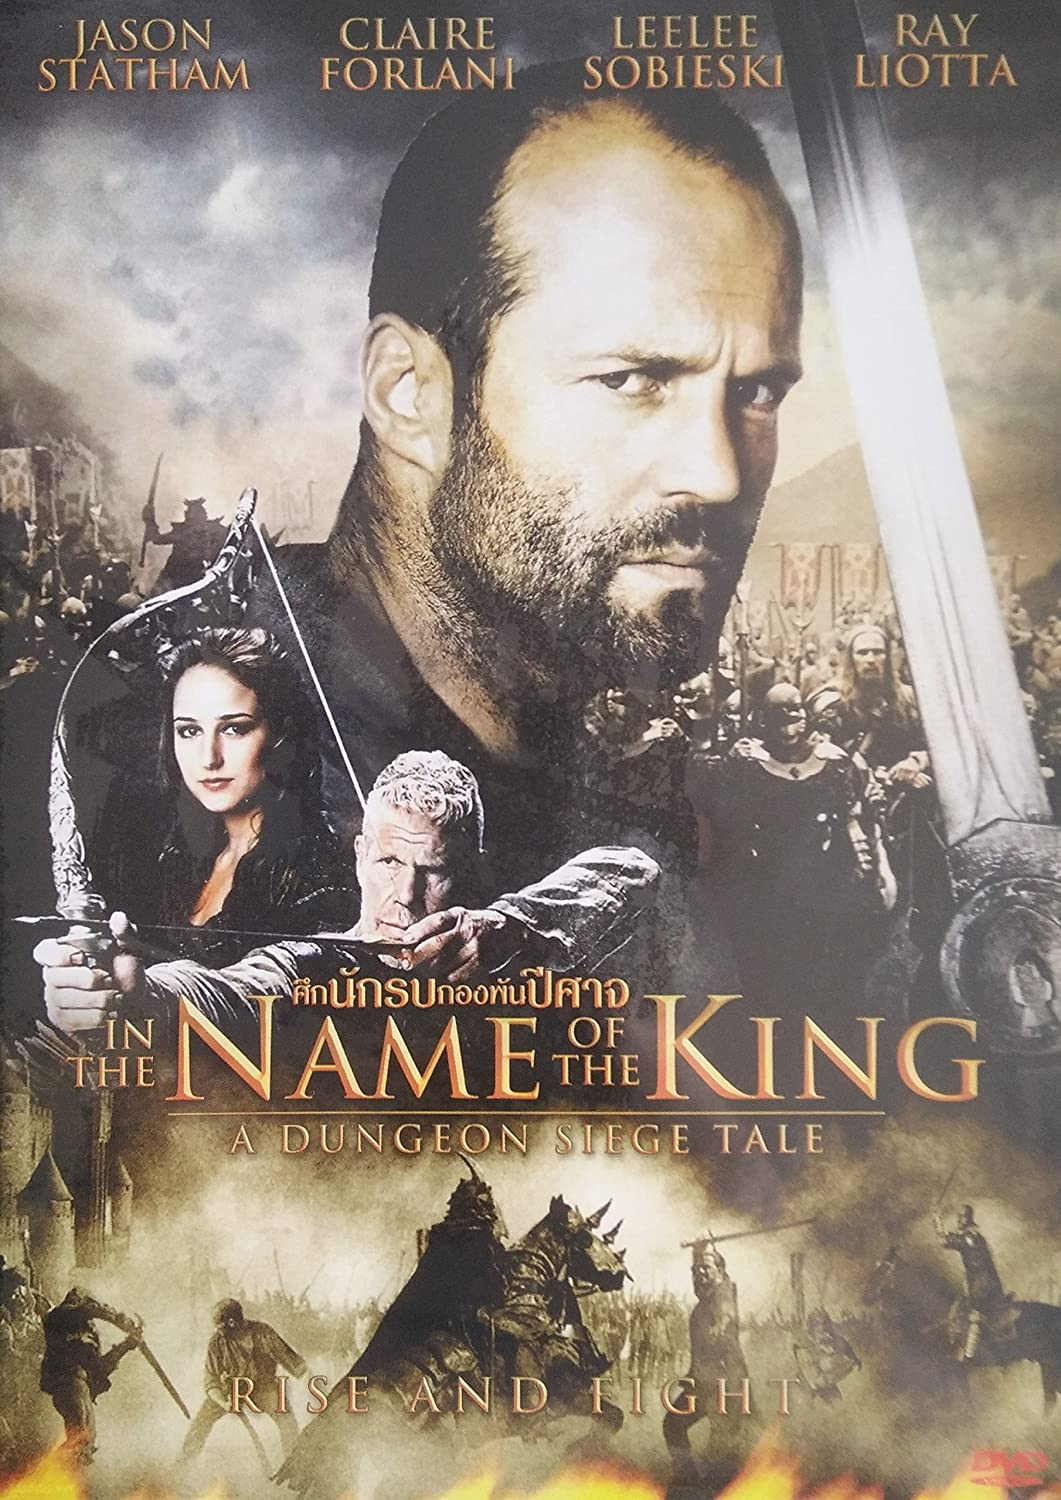 In The Name Of The King A Dungeon Siege Tale 2007 Jason Statham